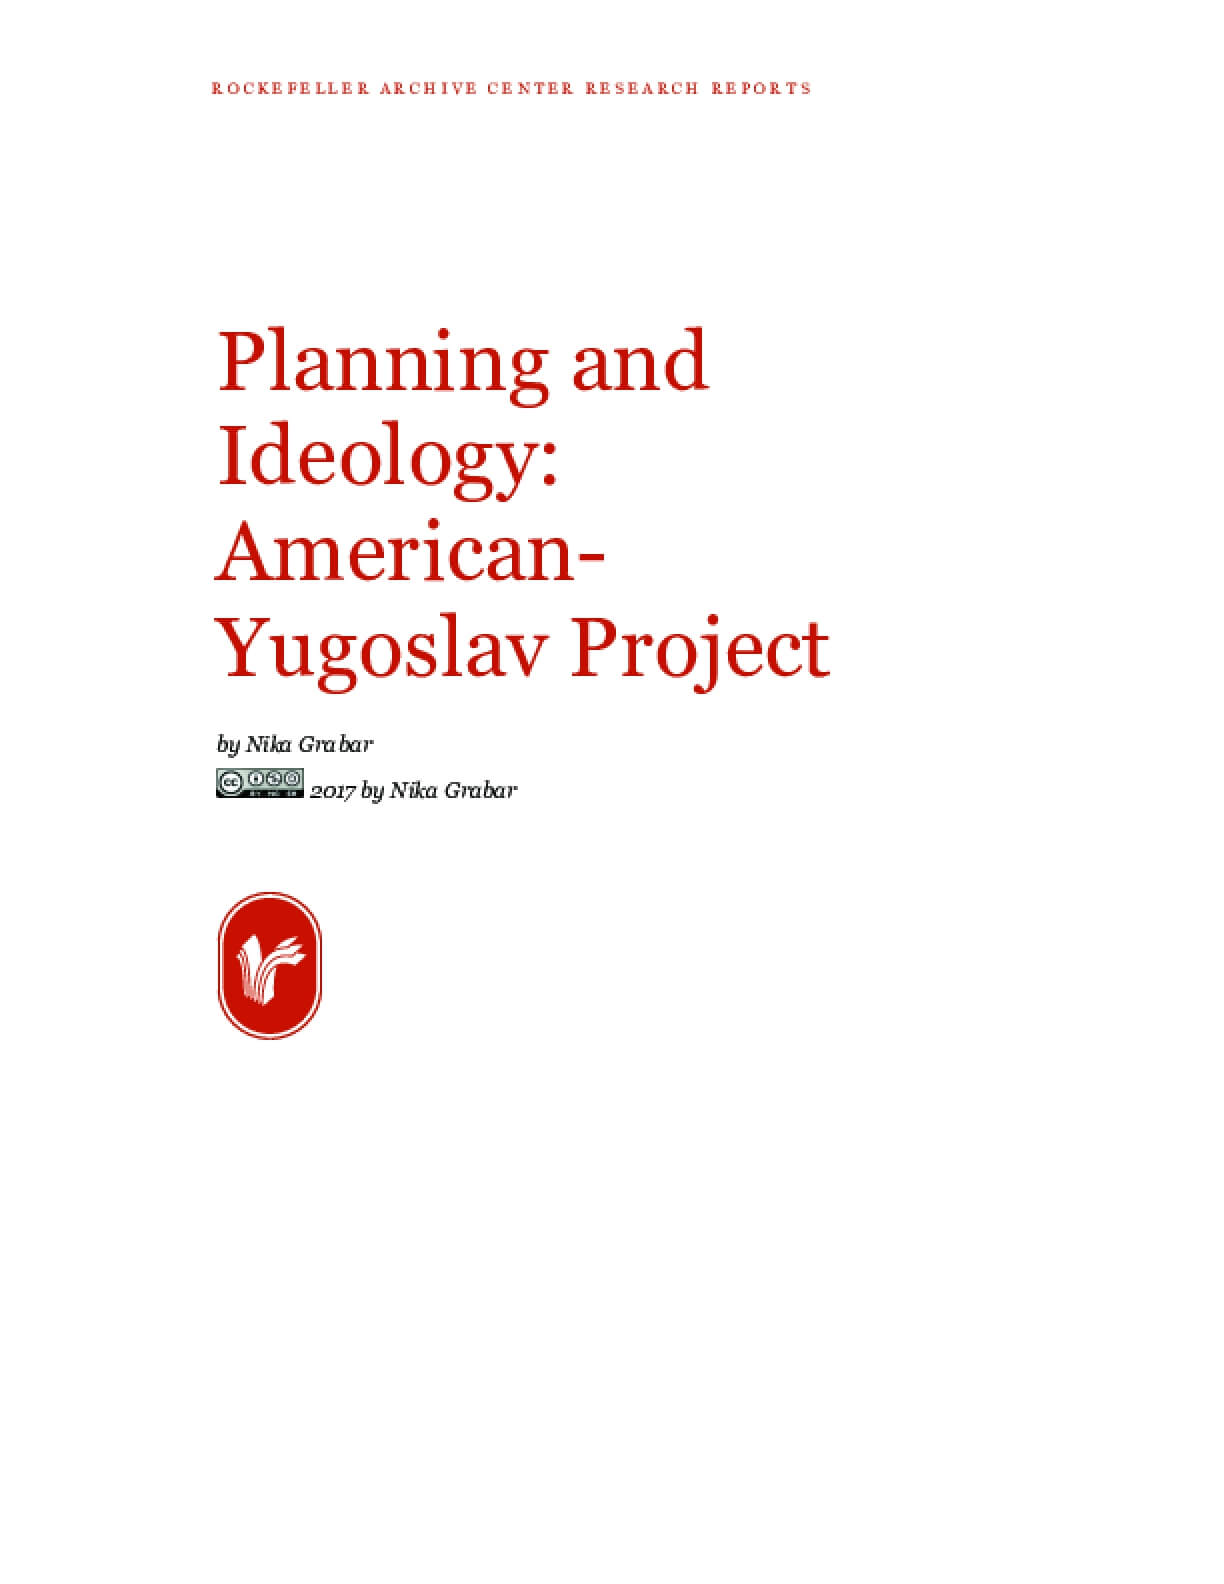 Planning and Ideology: American-Yugoslav Project